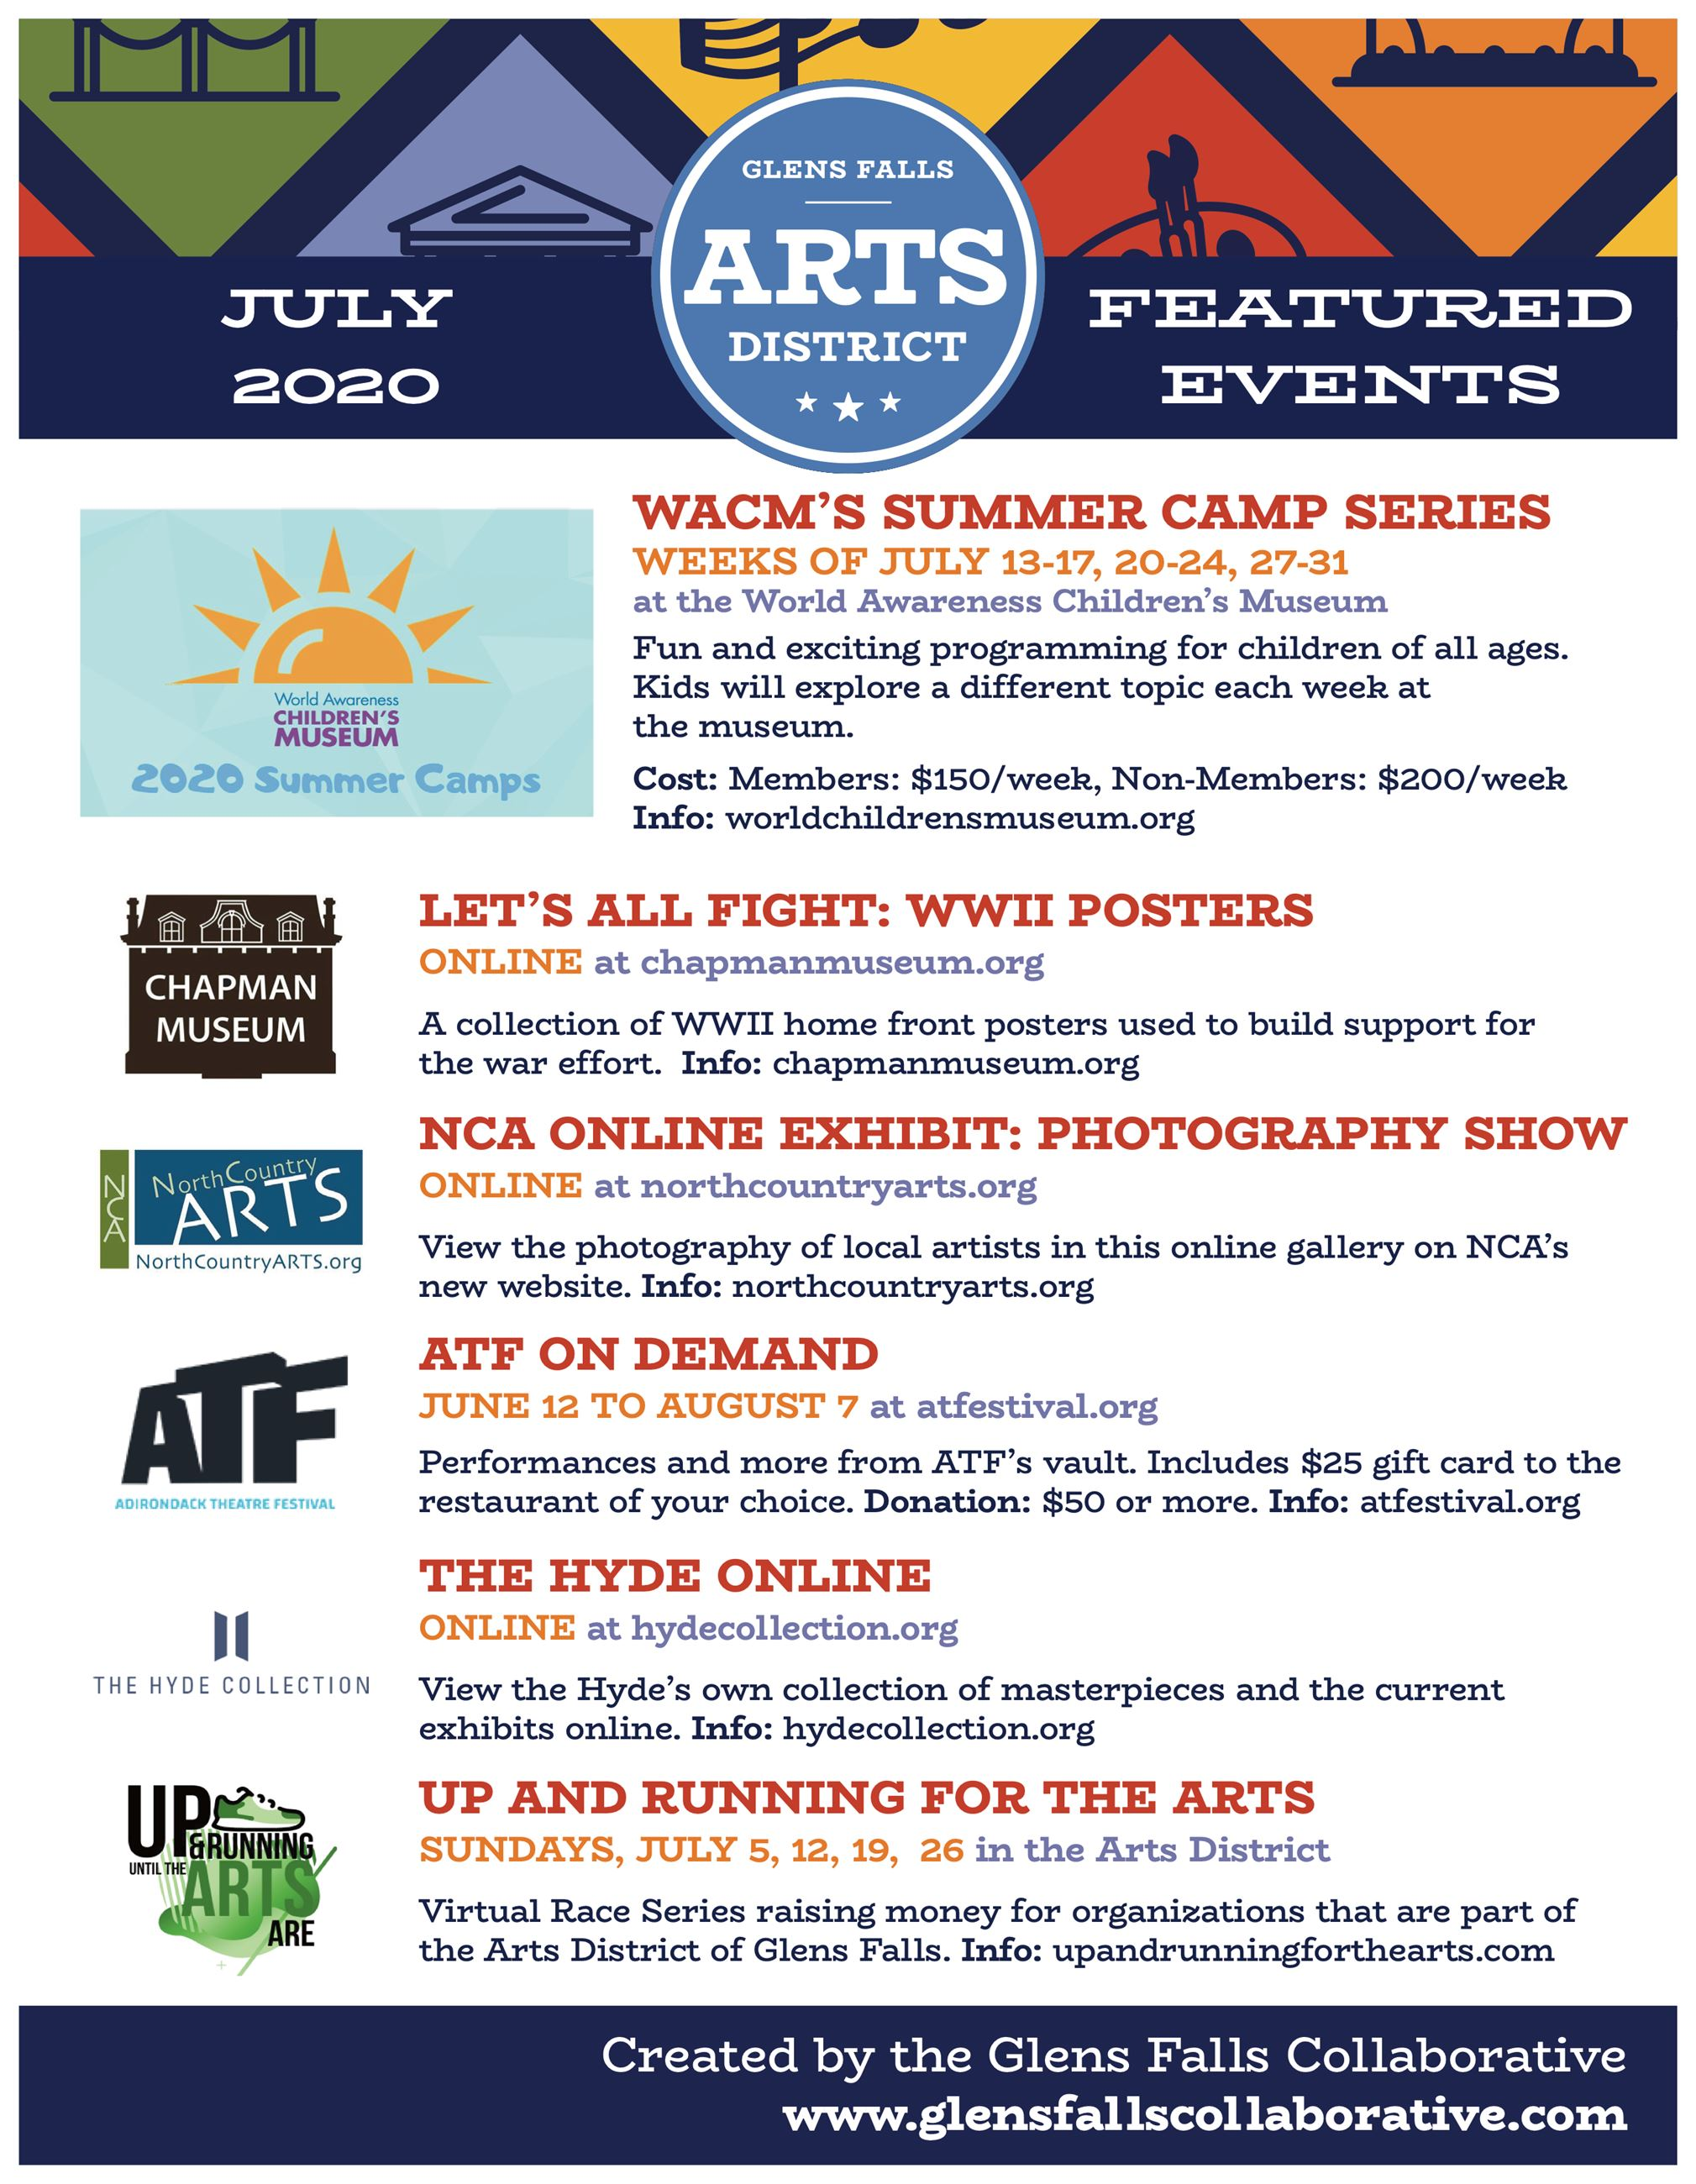 Arts Events July 2020